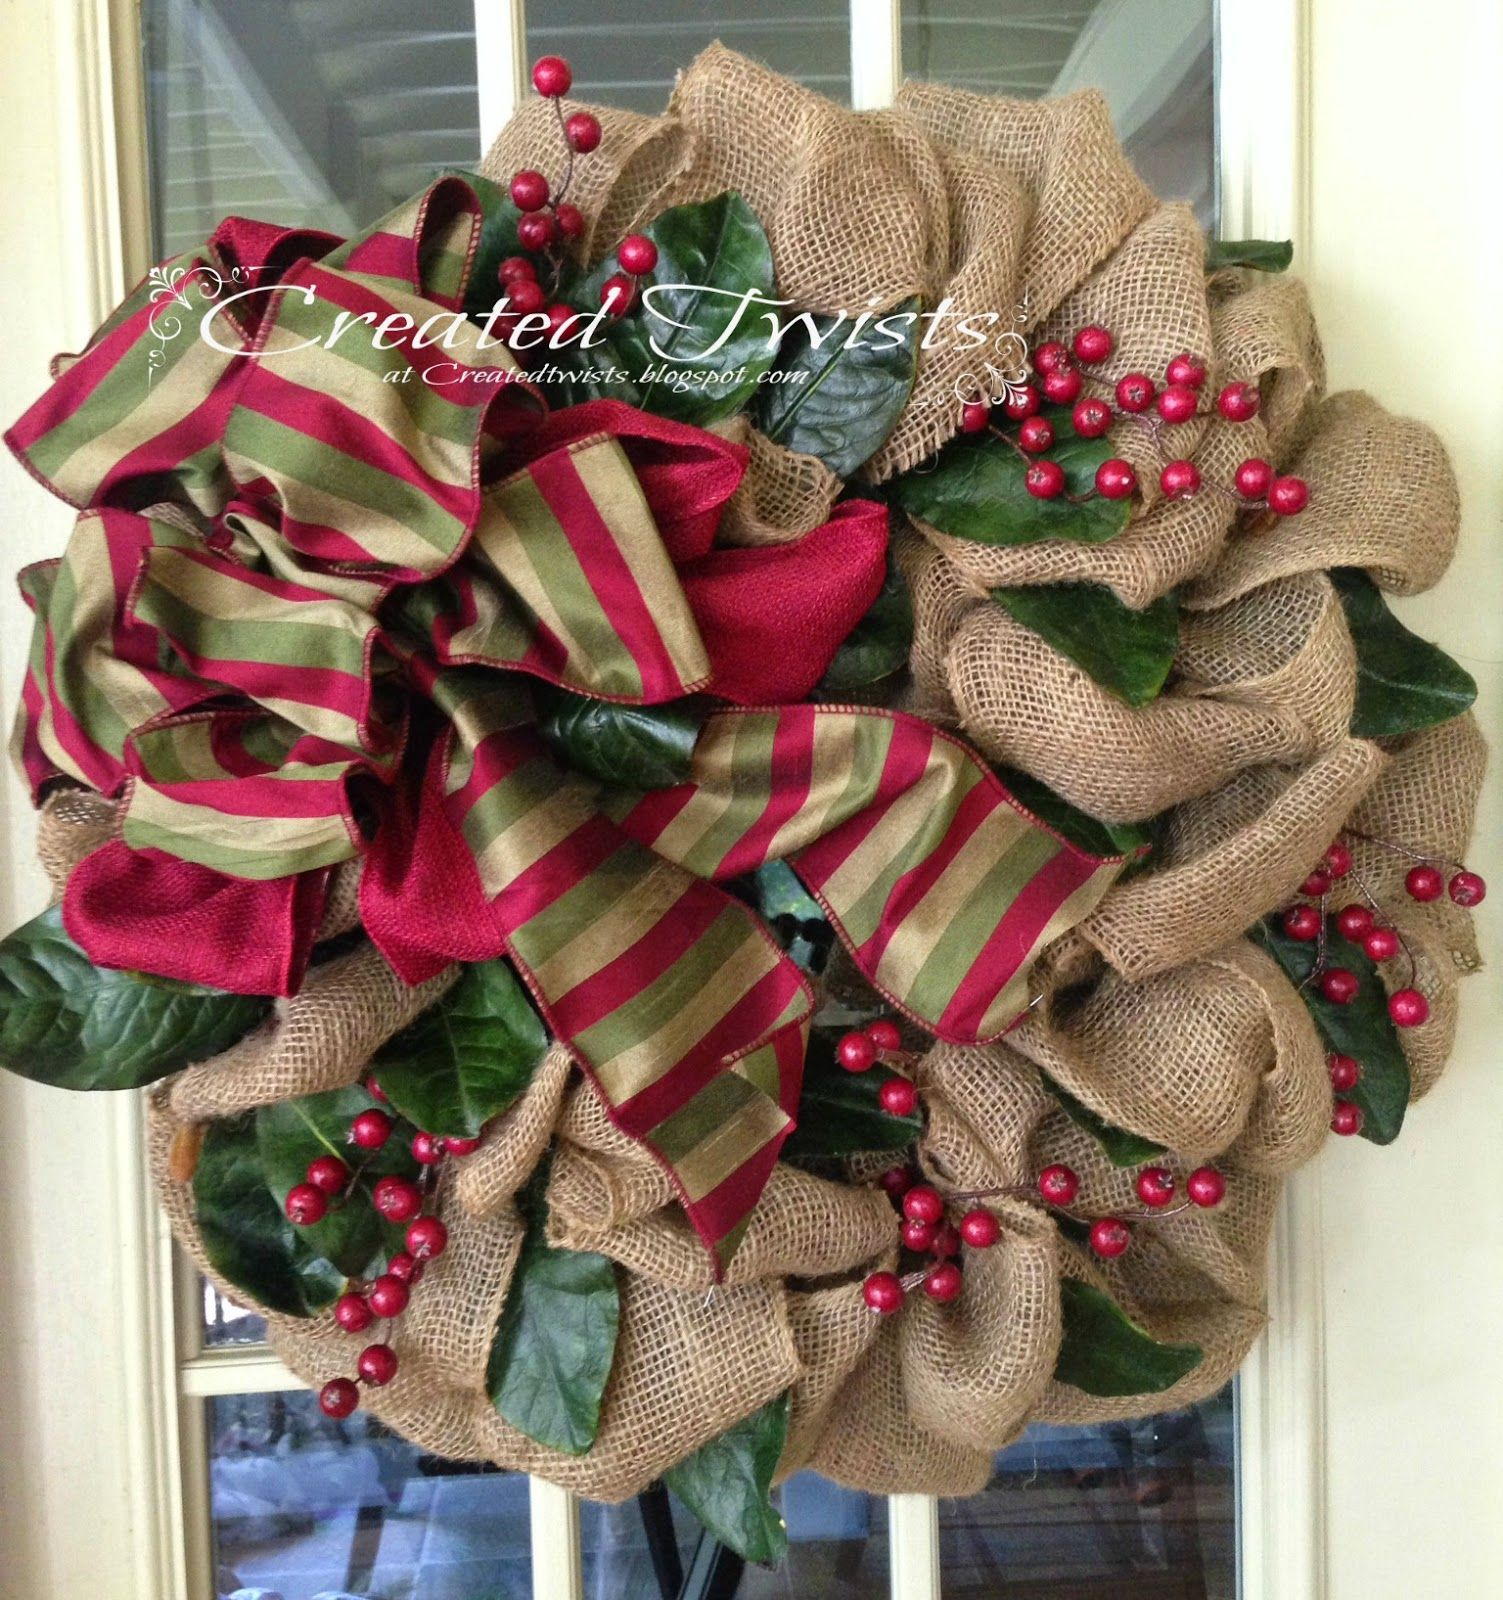 Burlap Christmas Wreaths with Magnolia Leaves and Berries